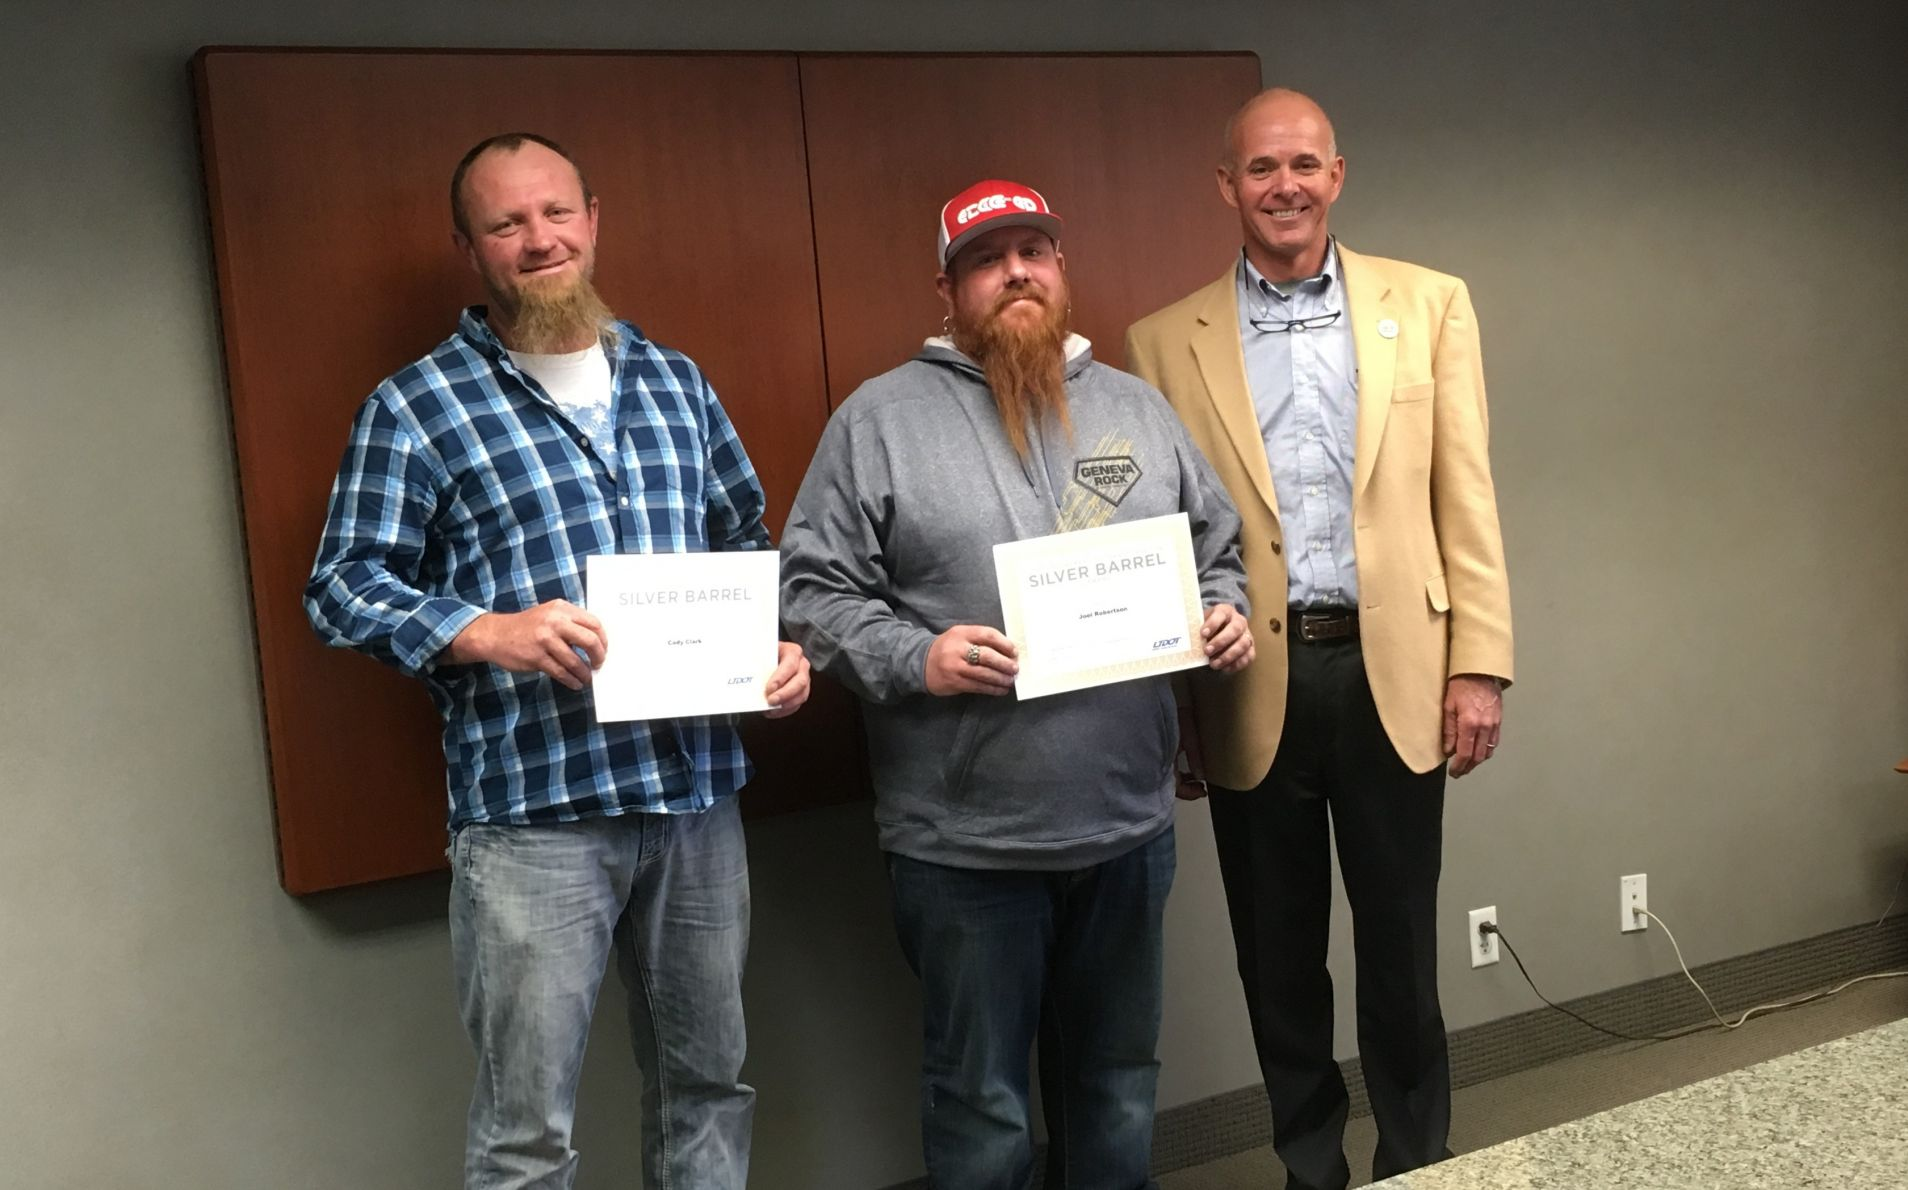 Geneva Rock Employees Recognized with UDOT Silver Barrel Award